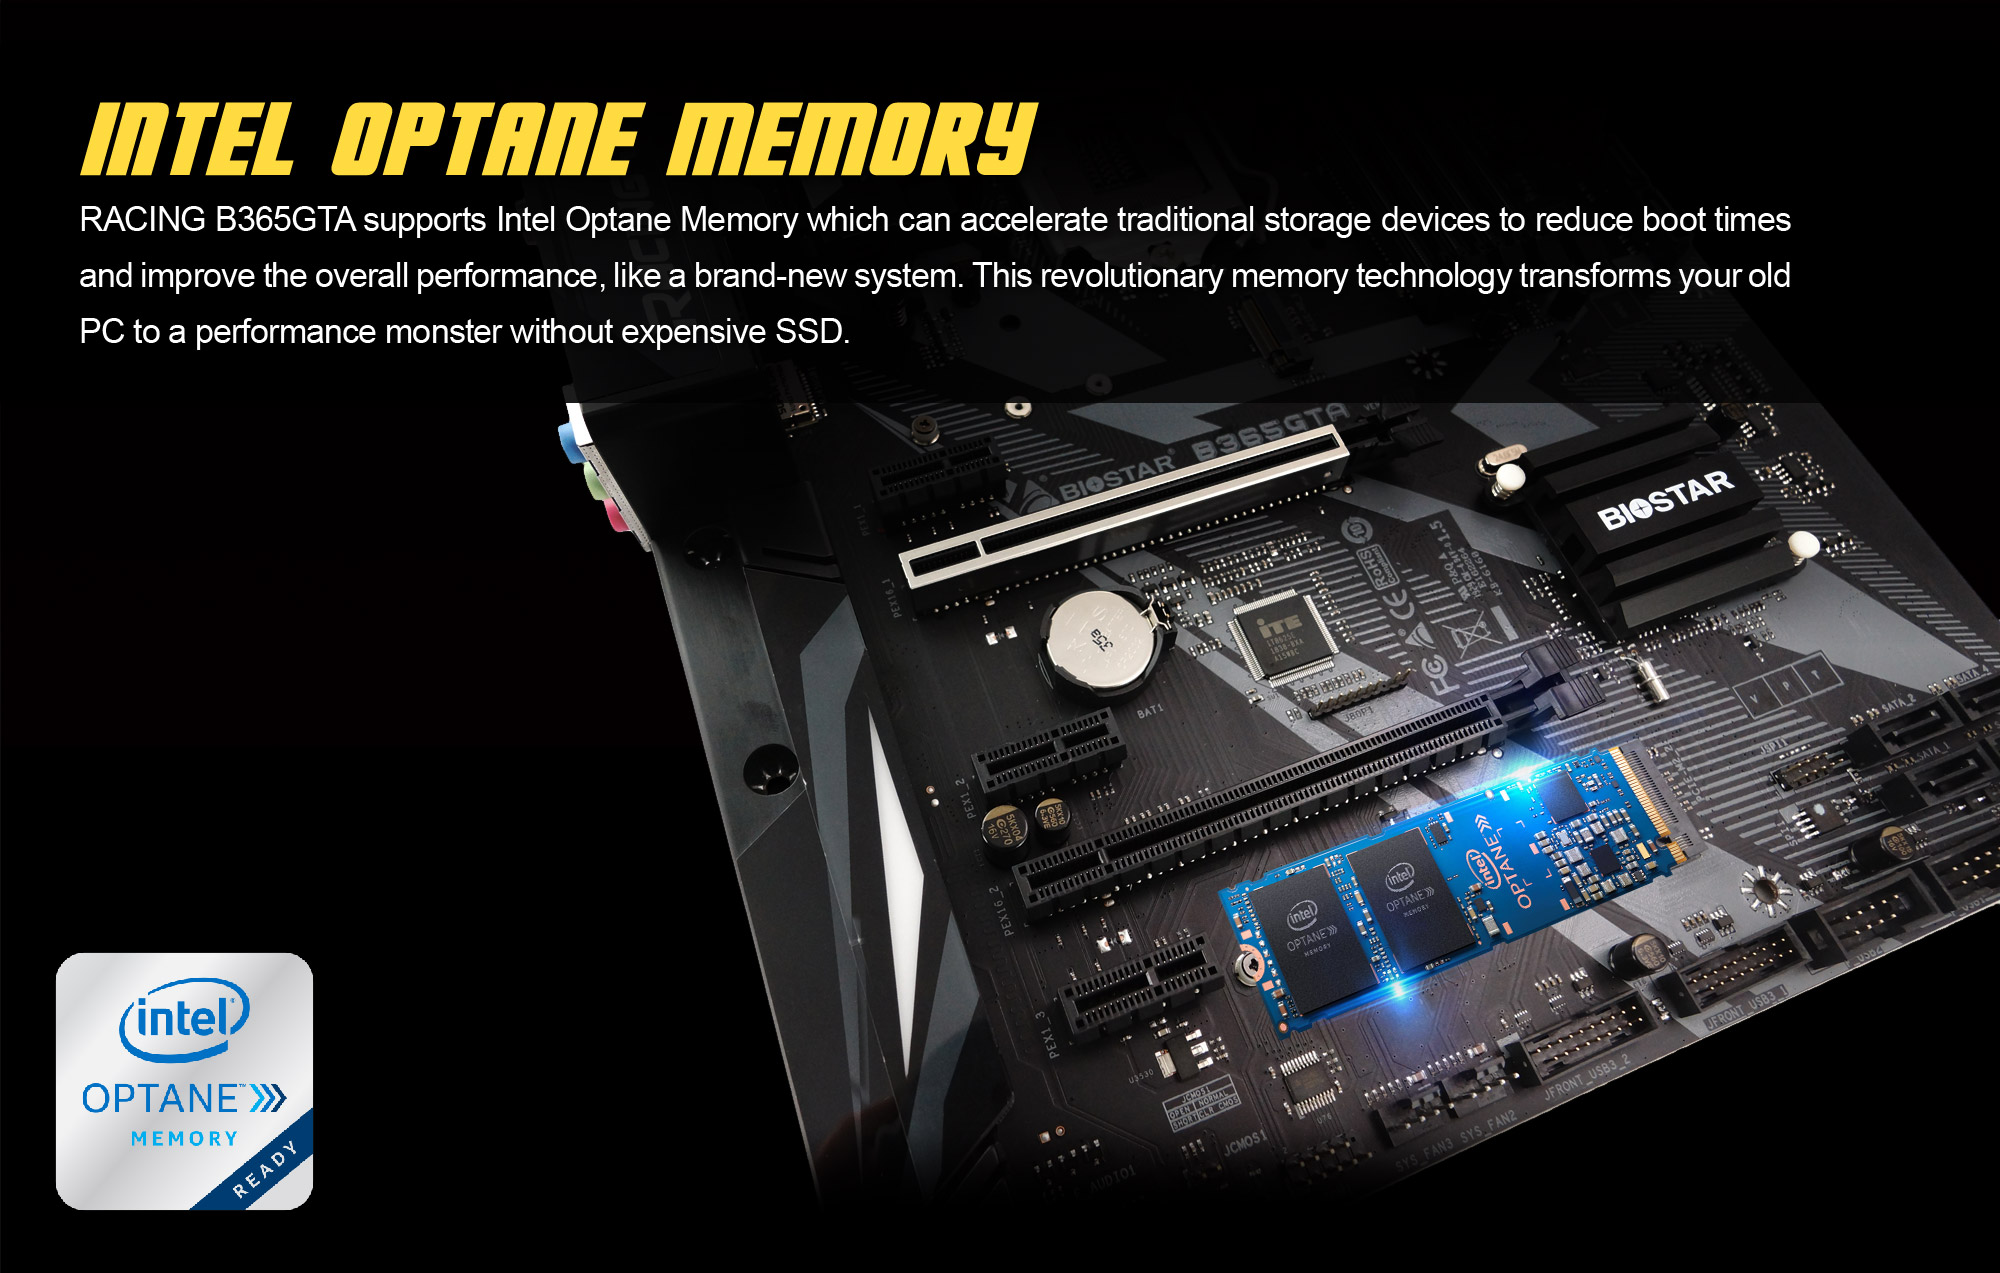 INTEL OPTANE MEMORY SUPPORT